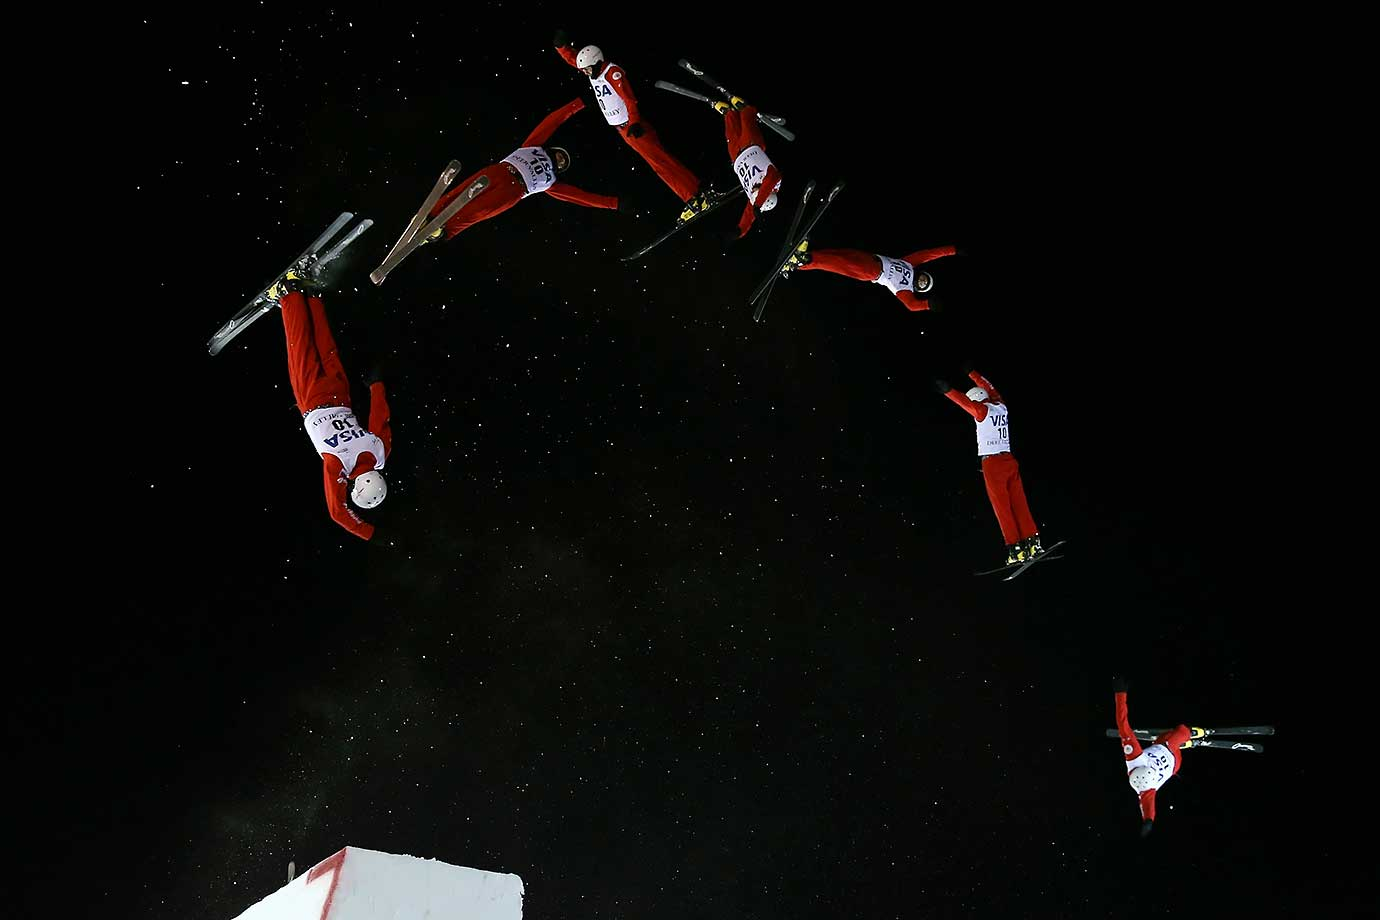 Multiple exposures were combined in camera to produce this image of Petr Medulich of Russia jumping to first place in the FIS Freestyle Skiing Aerials World Cup in Park City, Utah.